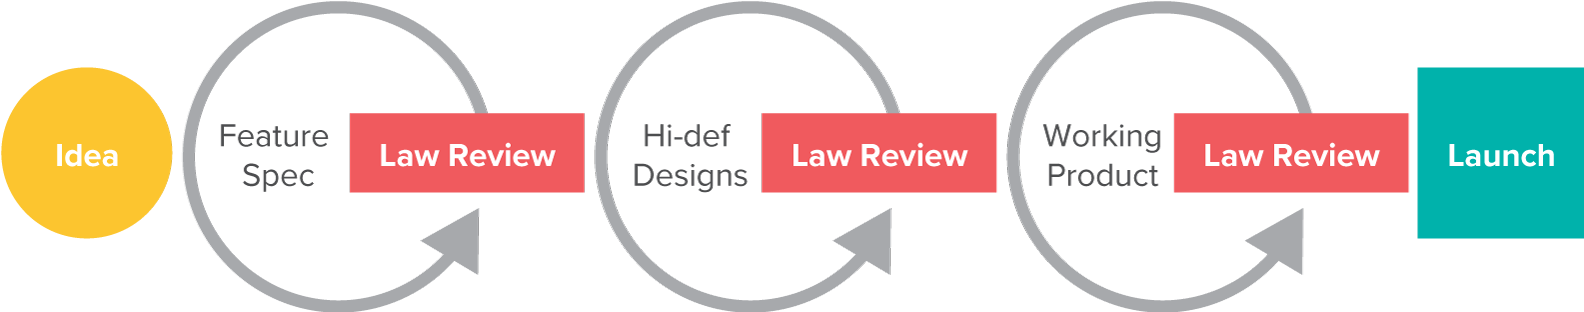 DISCO Law Review process